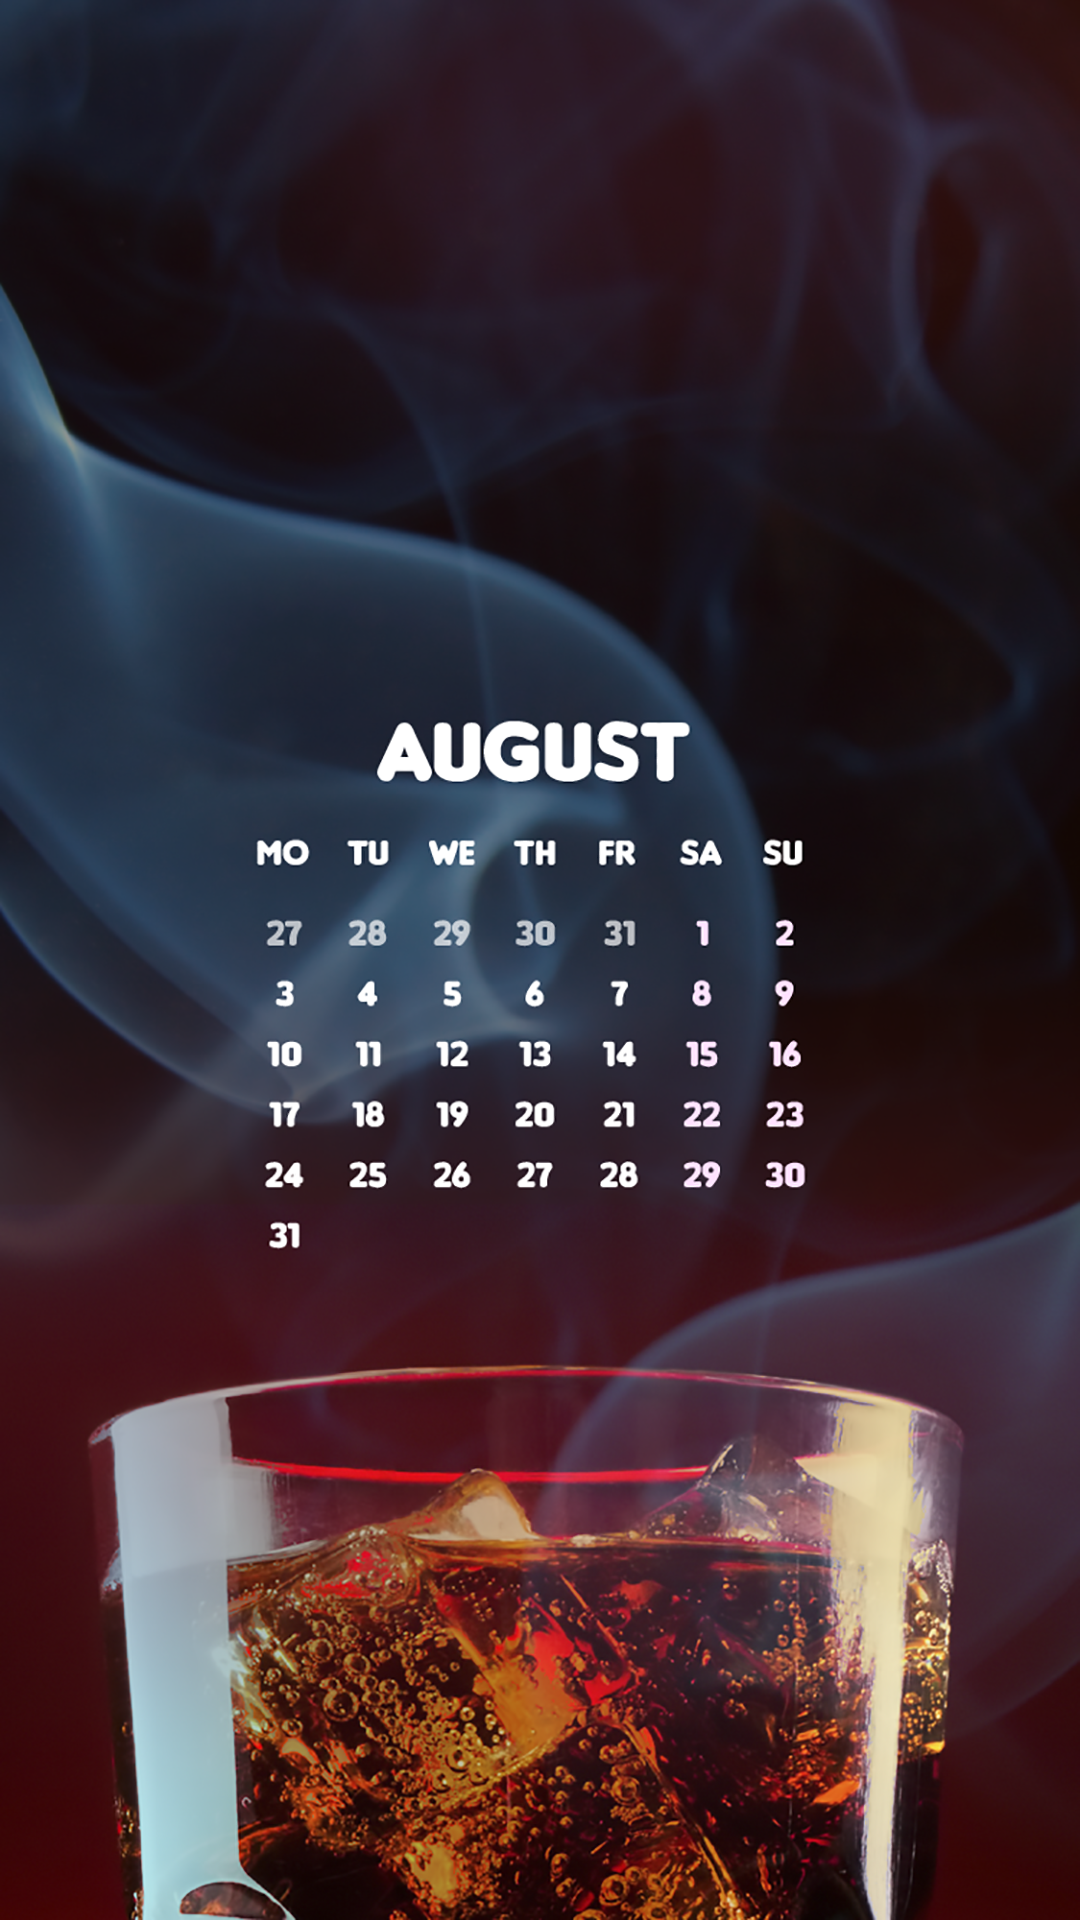 TAP AND GET THE FREE APP Lockscreens Art Creative Calendars